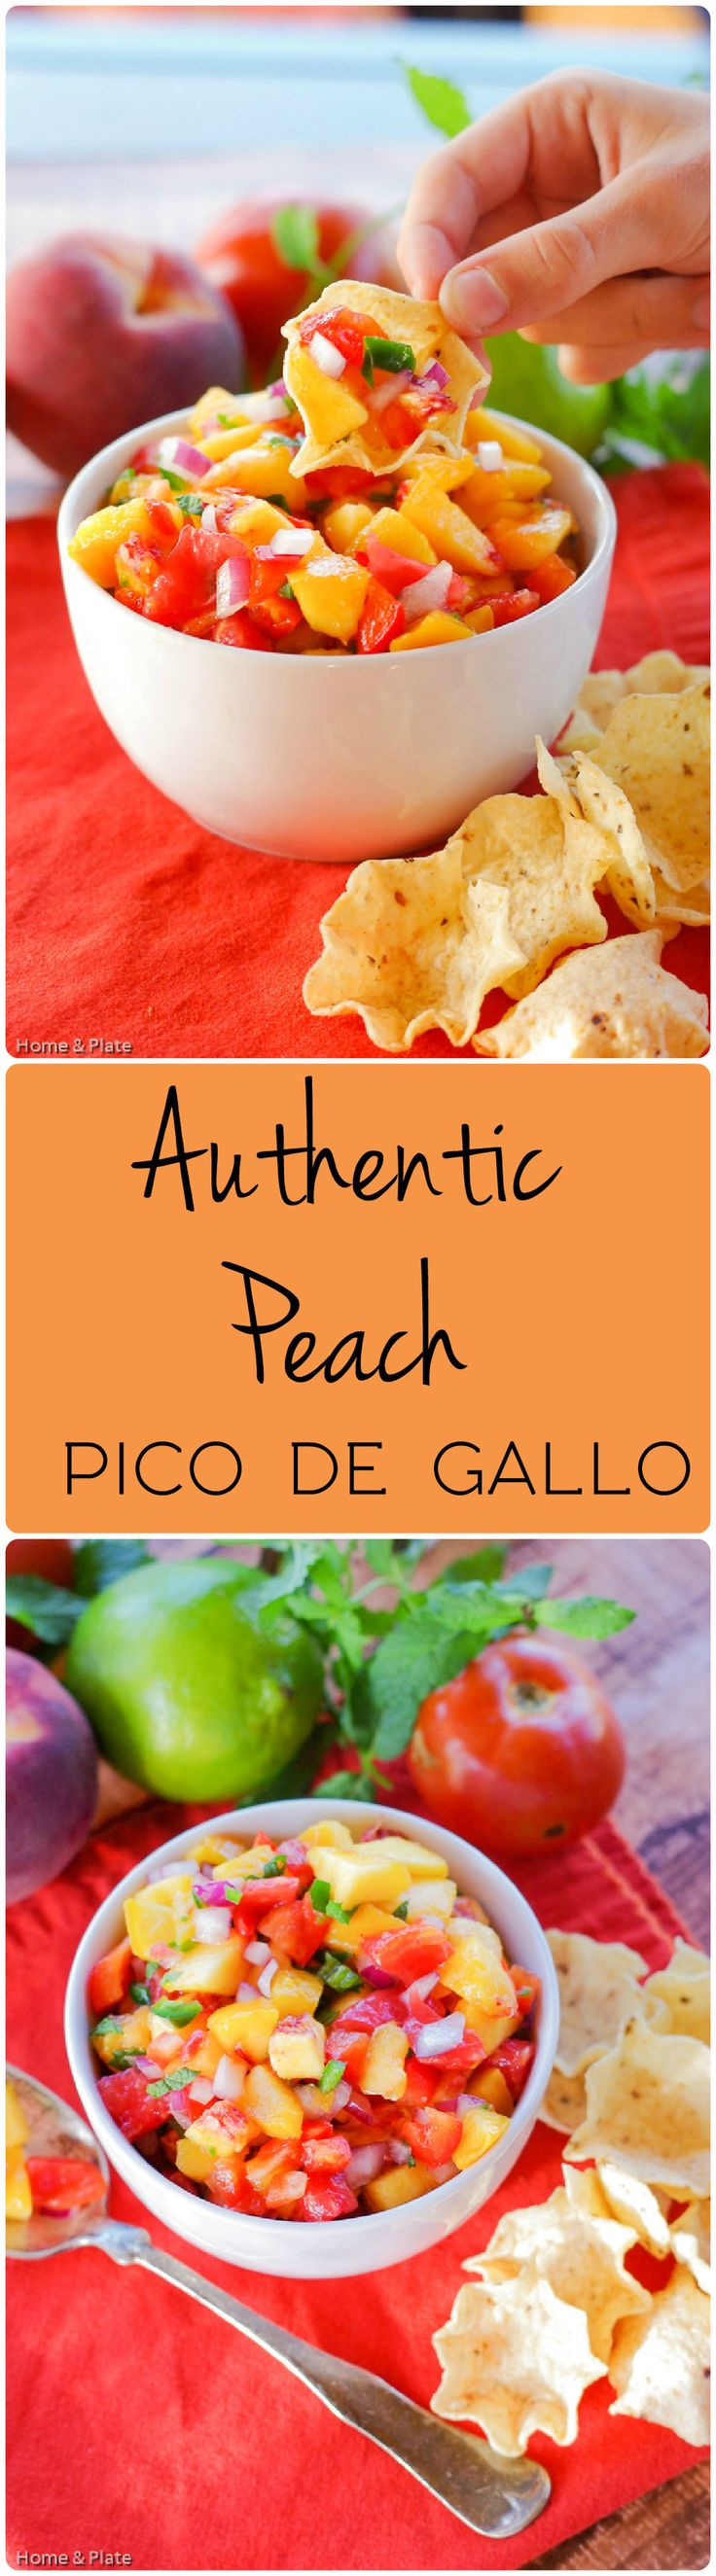 30 best appetizers images on pinterest food cook and beverage aug 26 authentic peach pico de gallo fandeluxe Document